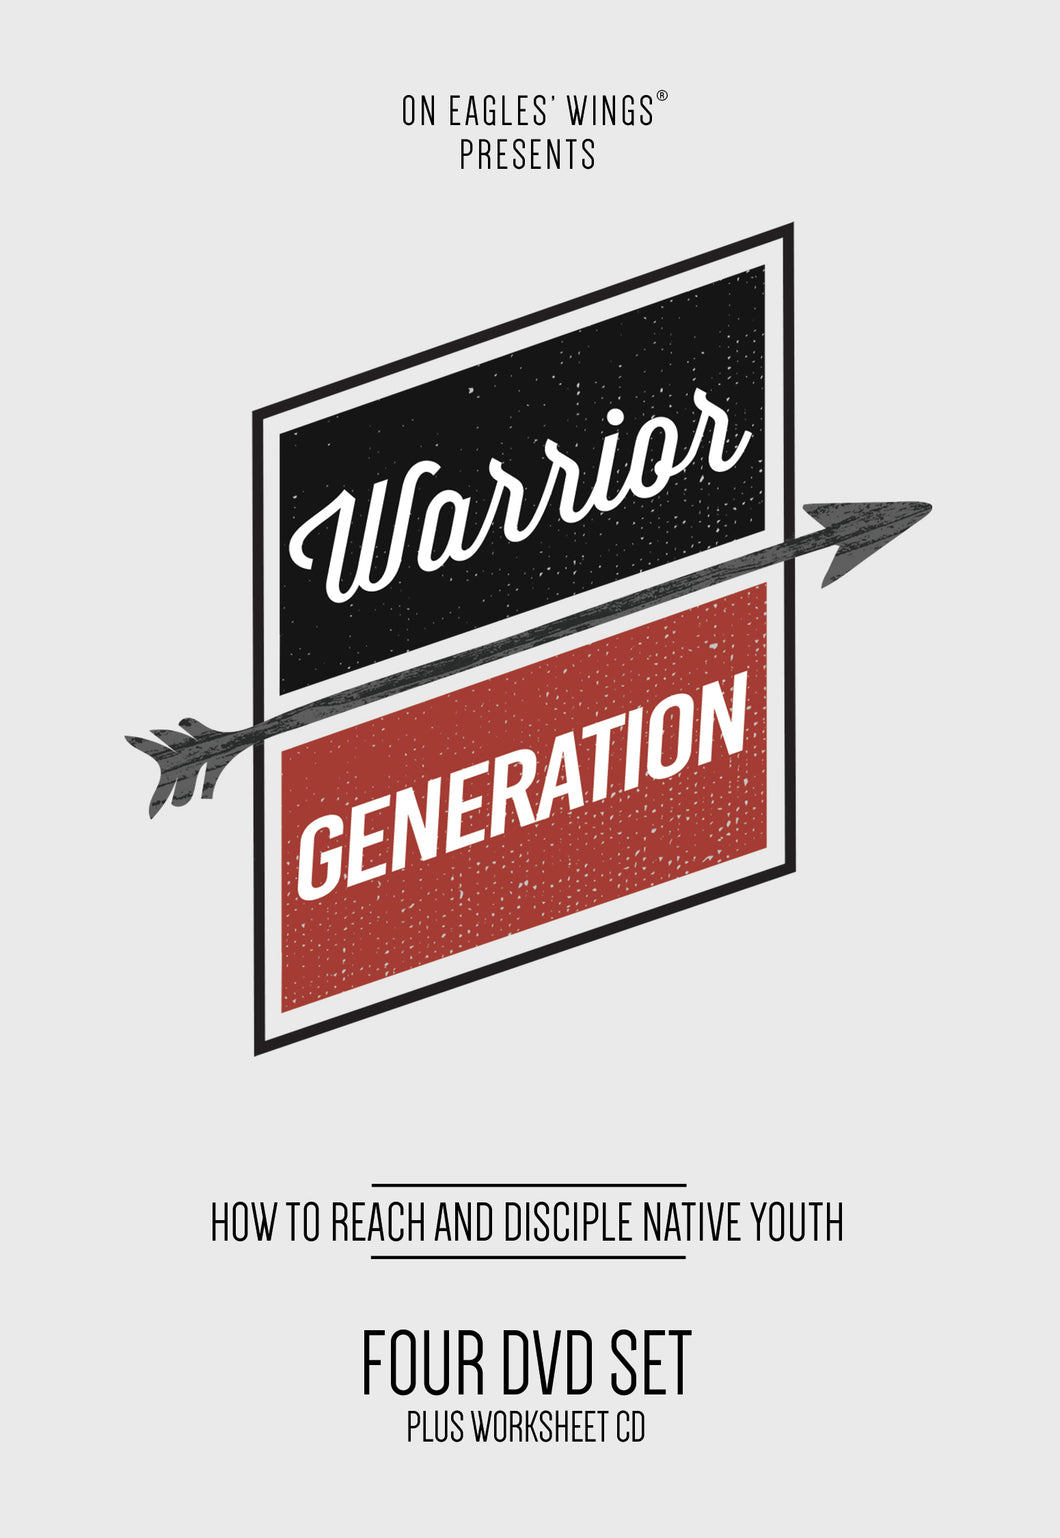 Warrior Generation DVD - How to Reach and Disciple Native Youth